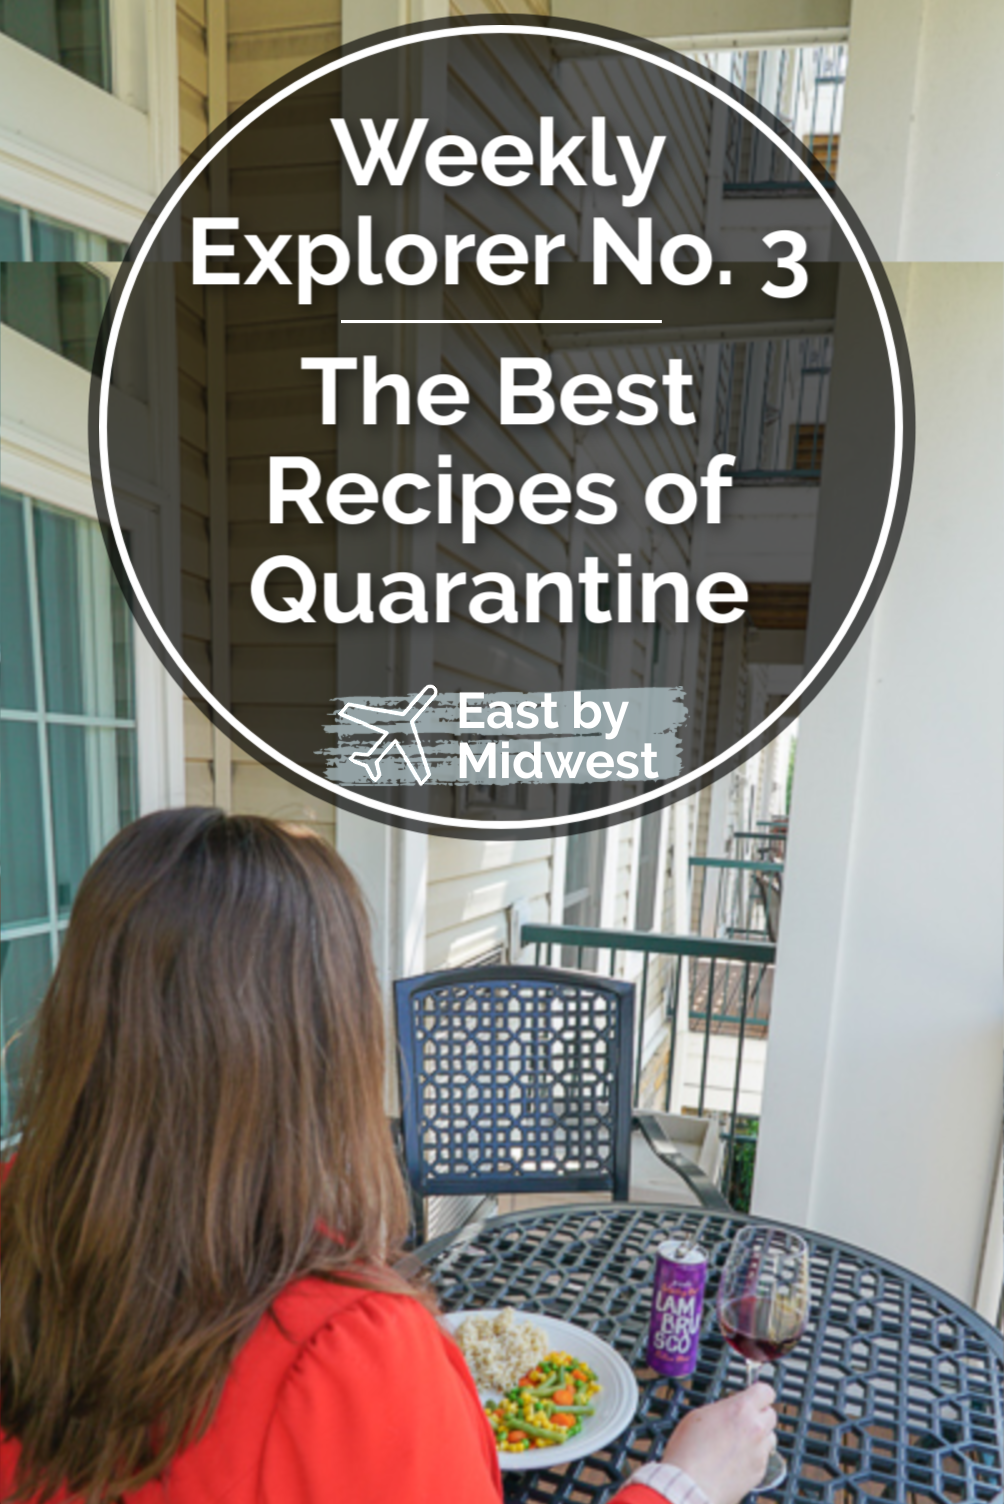 Weekly Explorer No. 3: The best recipes of quarantine